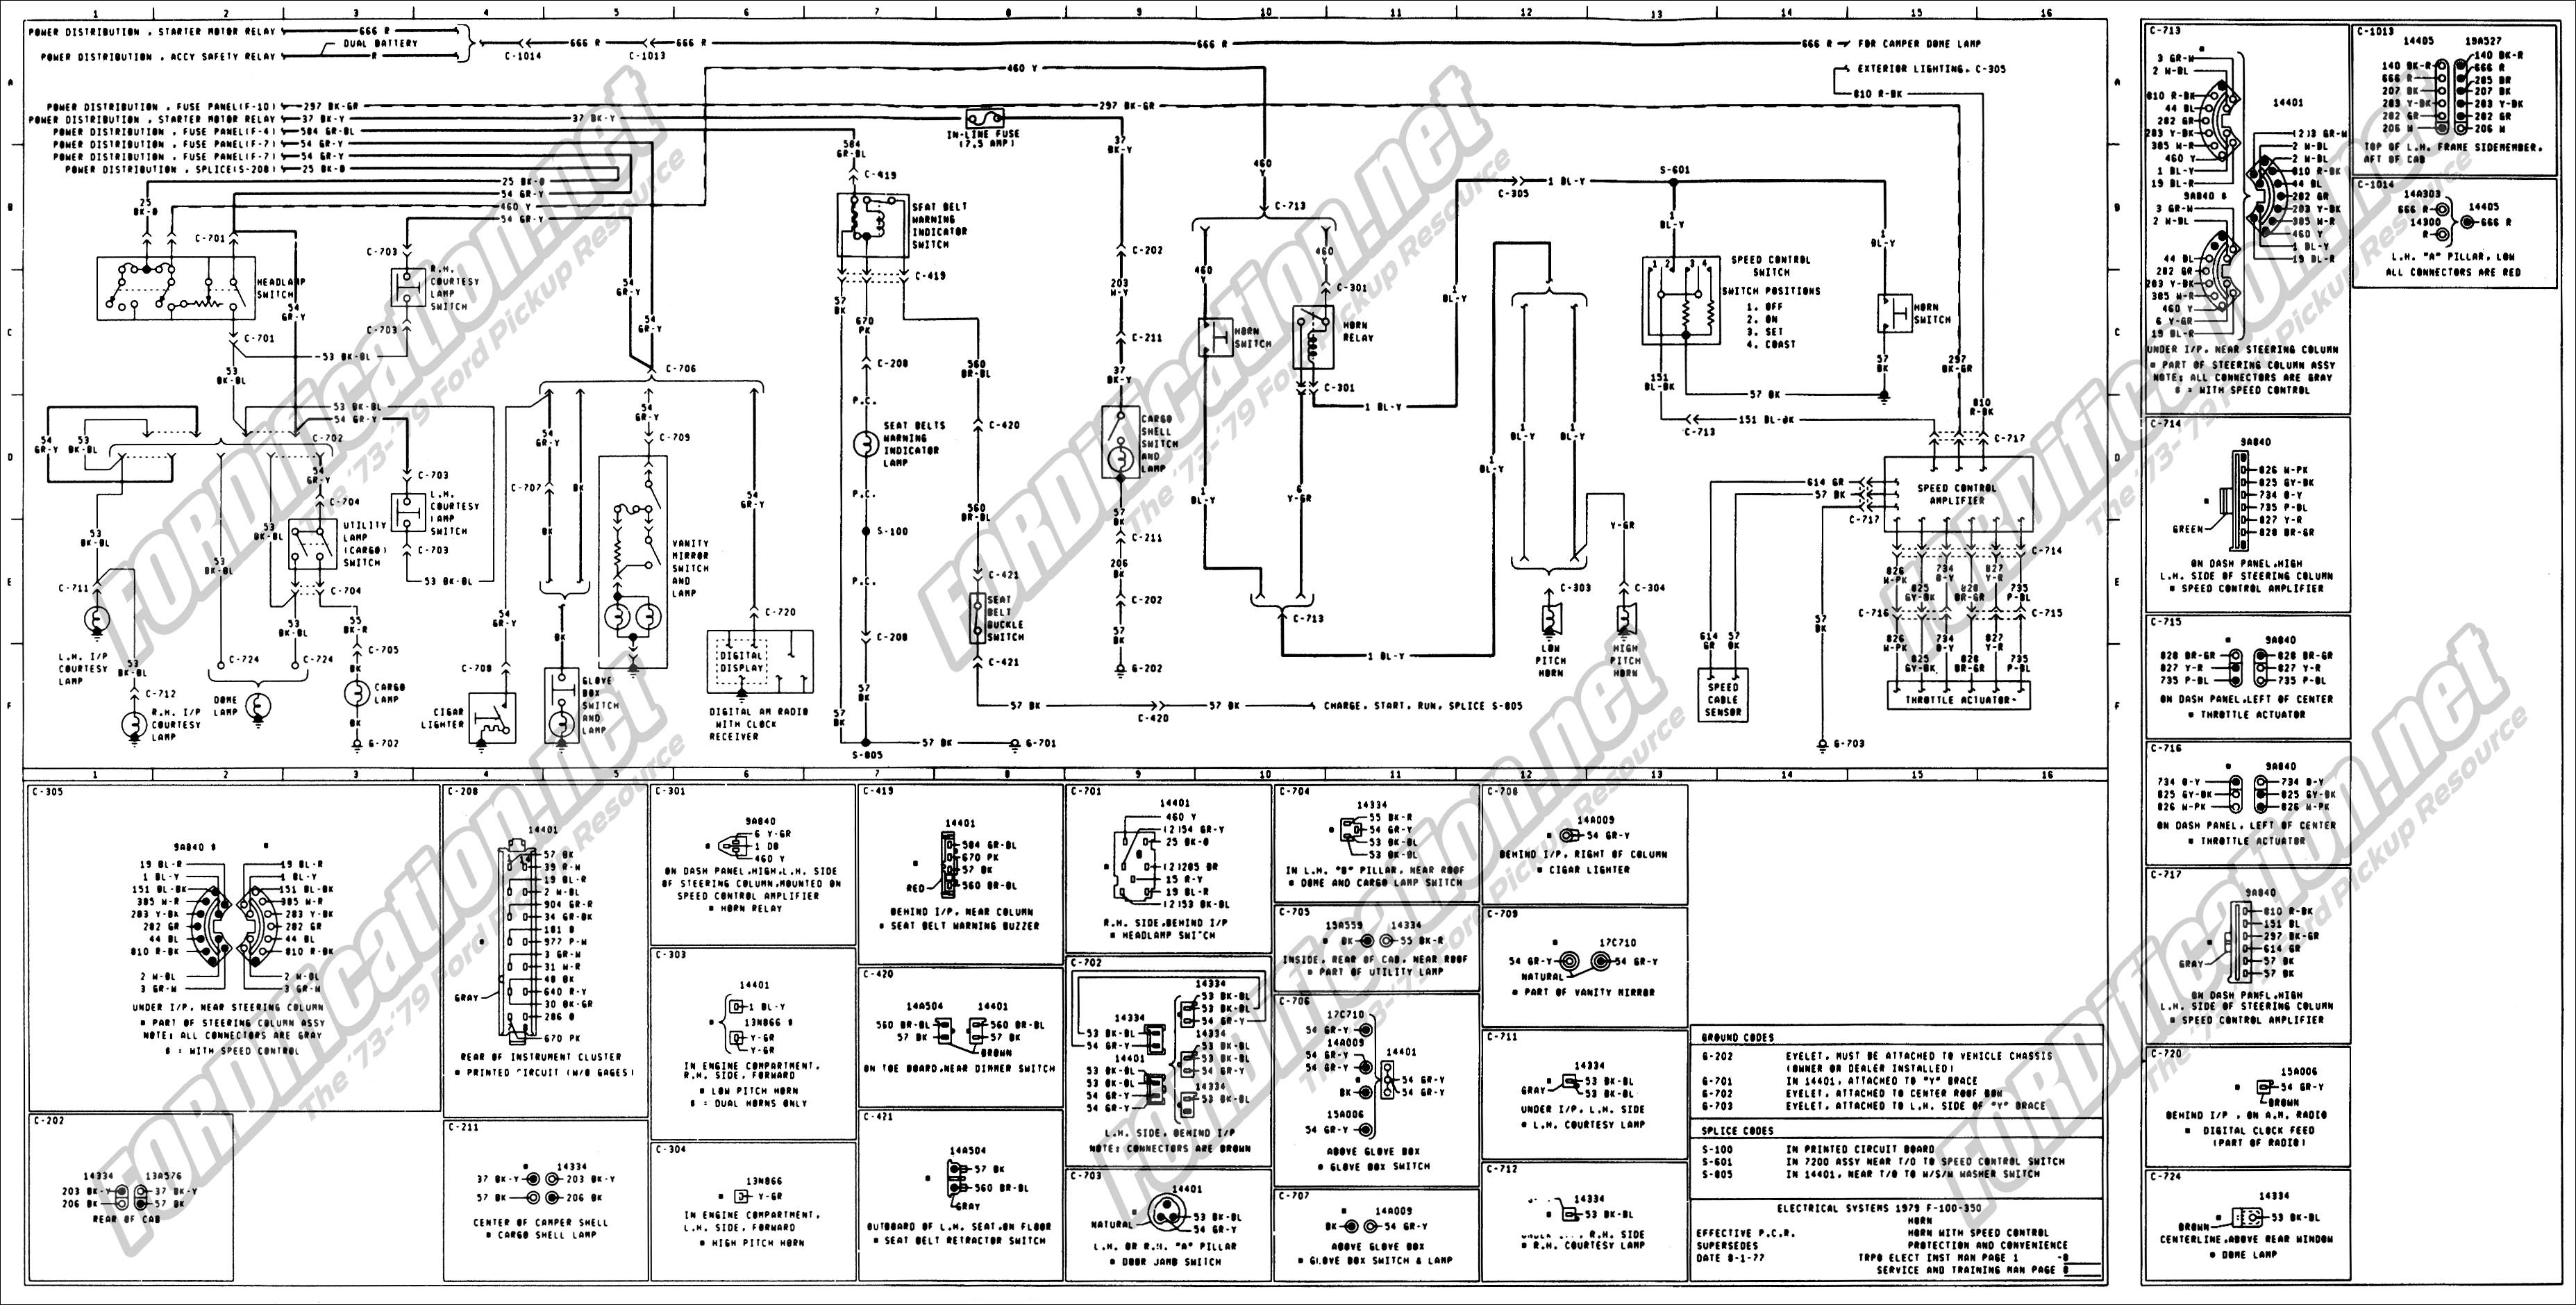 2001 ford 5 4 Engine Diagram 77 ford F250 Wiring Diagram Wiring Info • Of 2001 ford 5 4 Engine Diagram